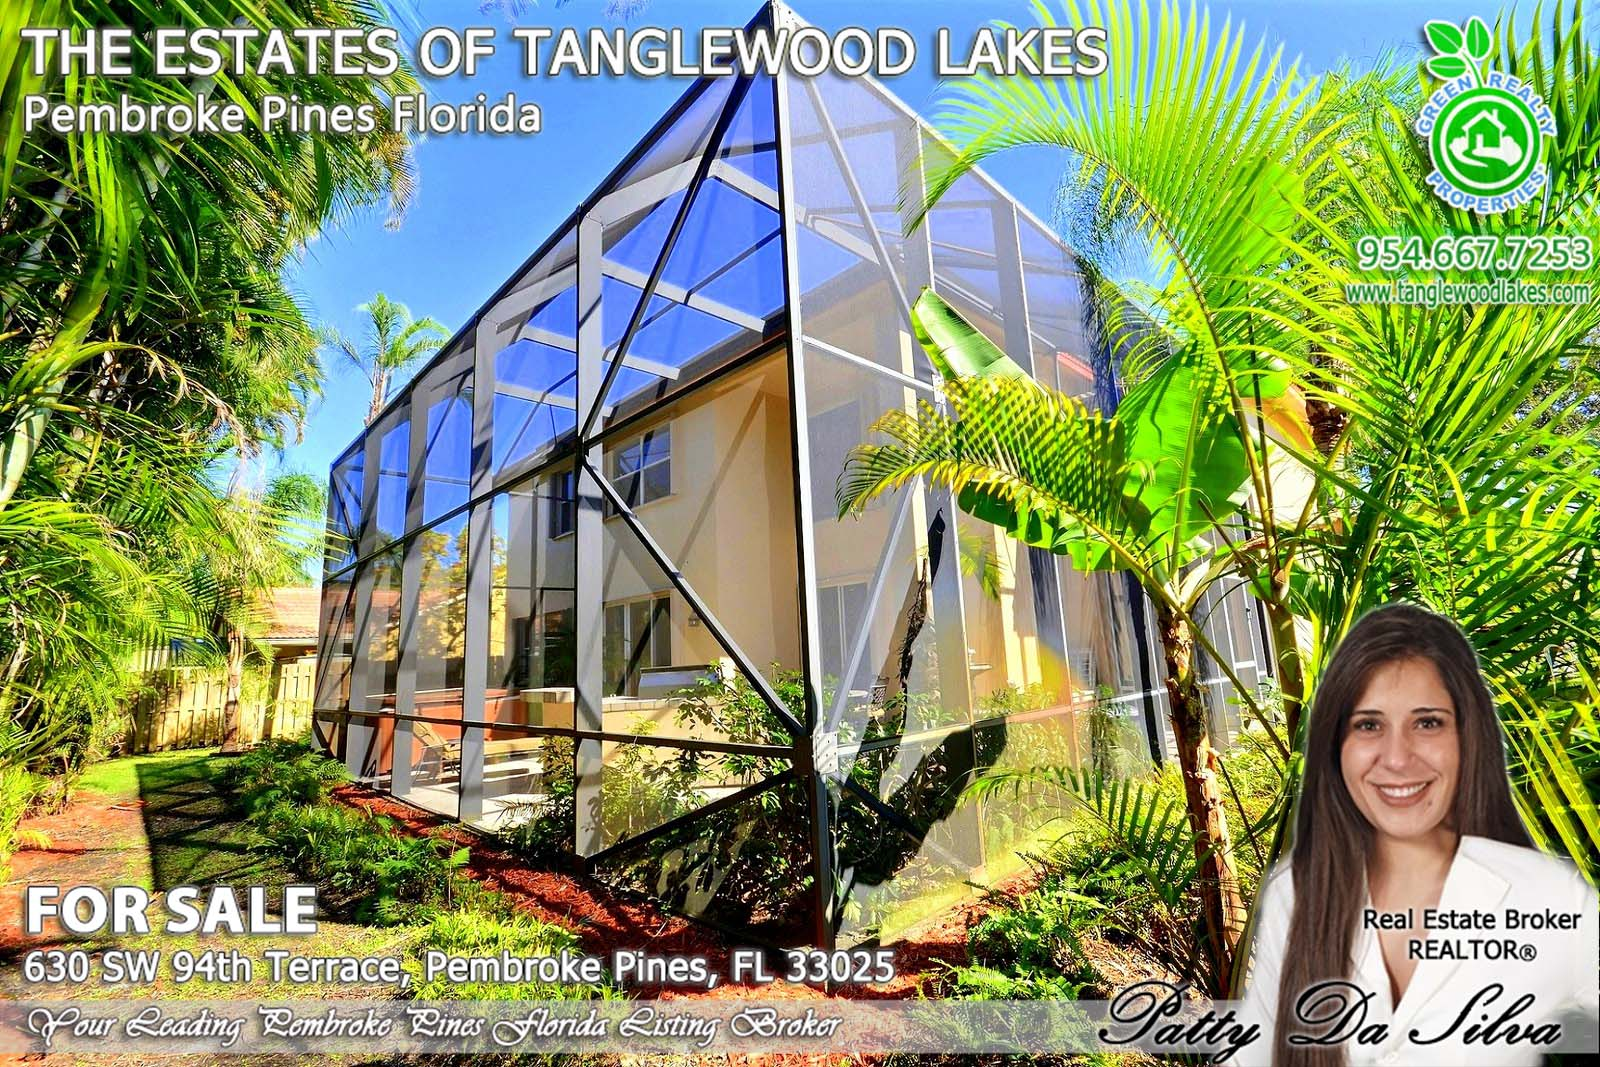 The Estates of Tanglewood Lakes realtor